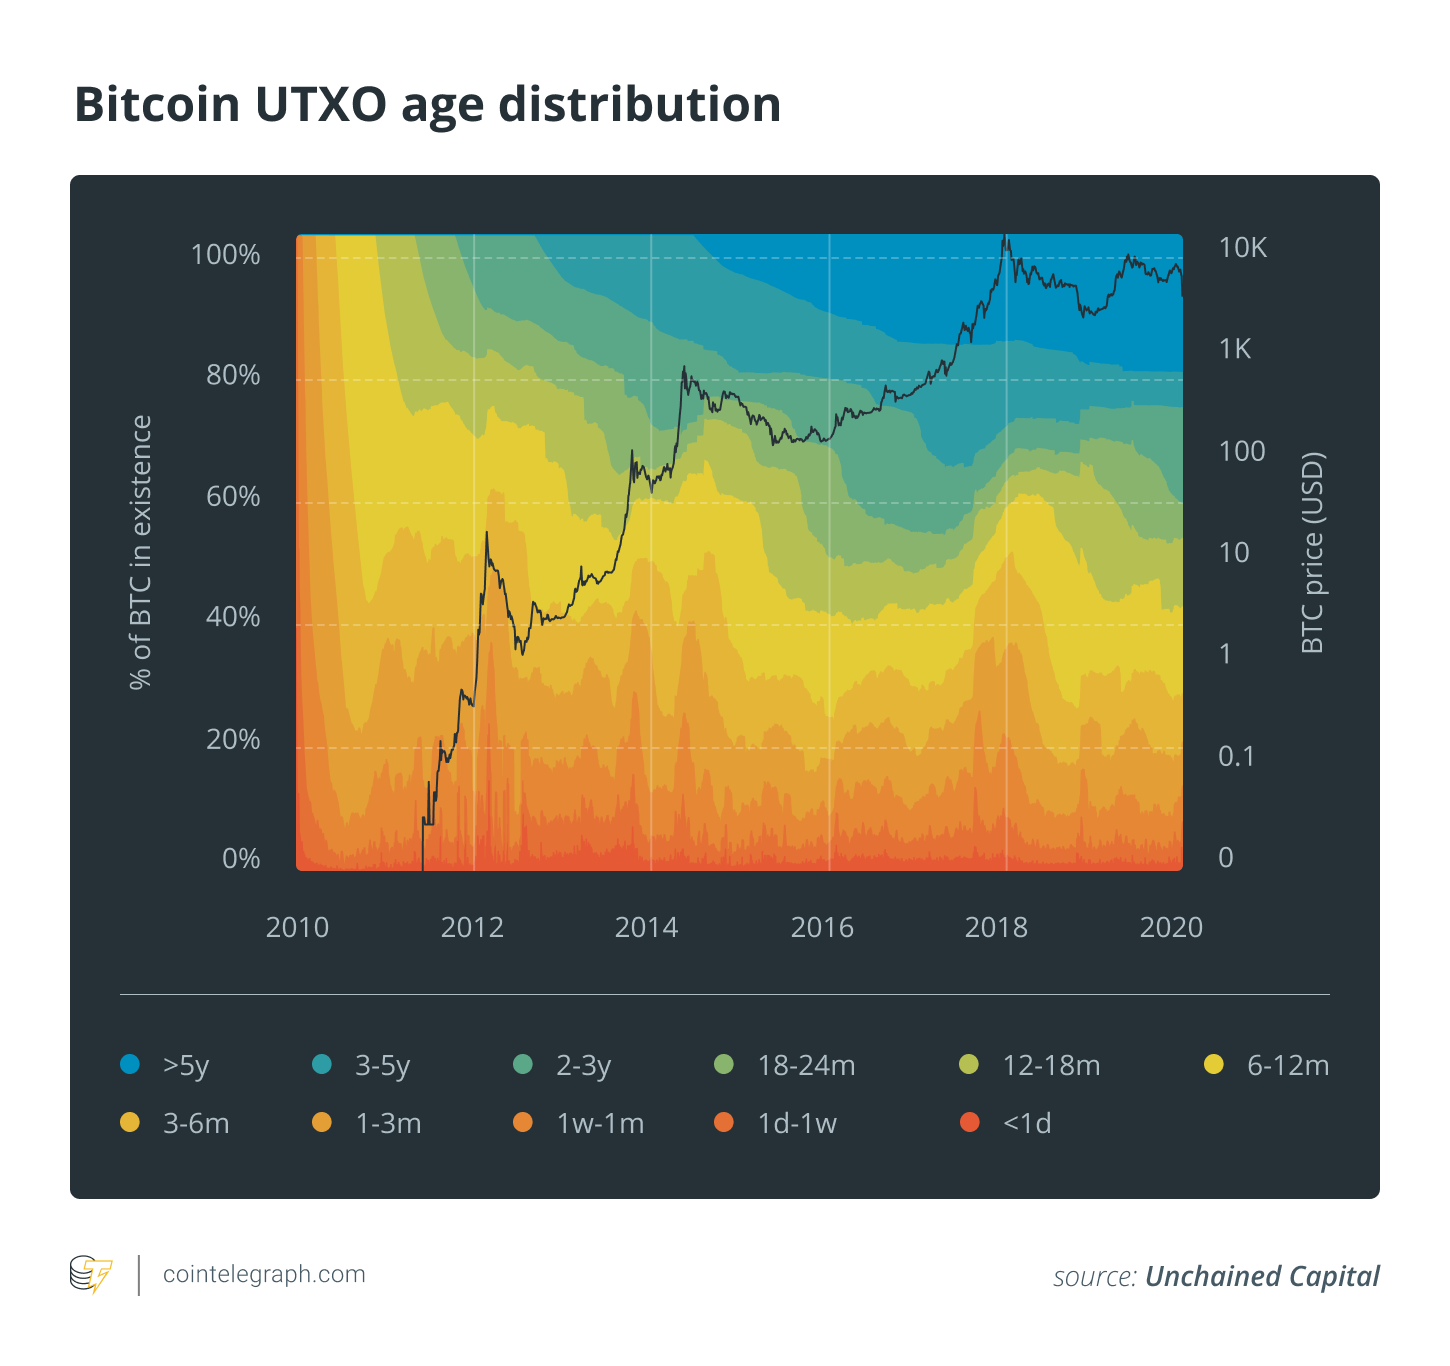 Bitcoin UTXO age distribution